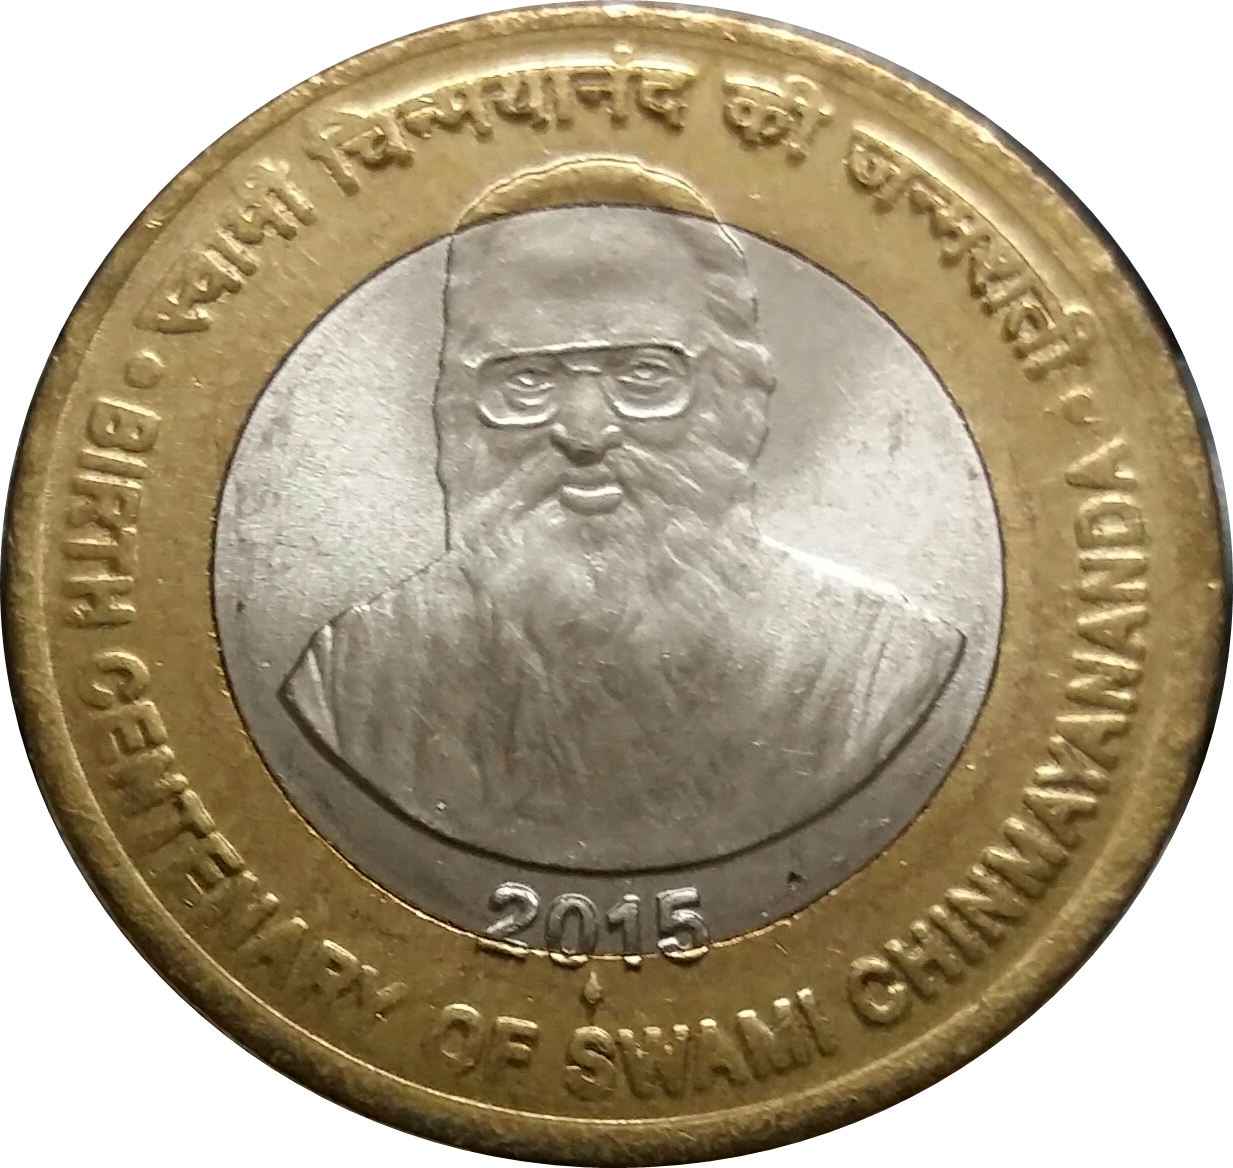 BIRTH CENTENARY OF SWAMI CHINMAYANANDA